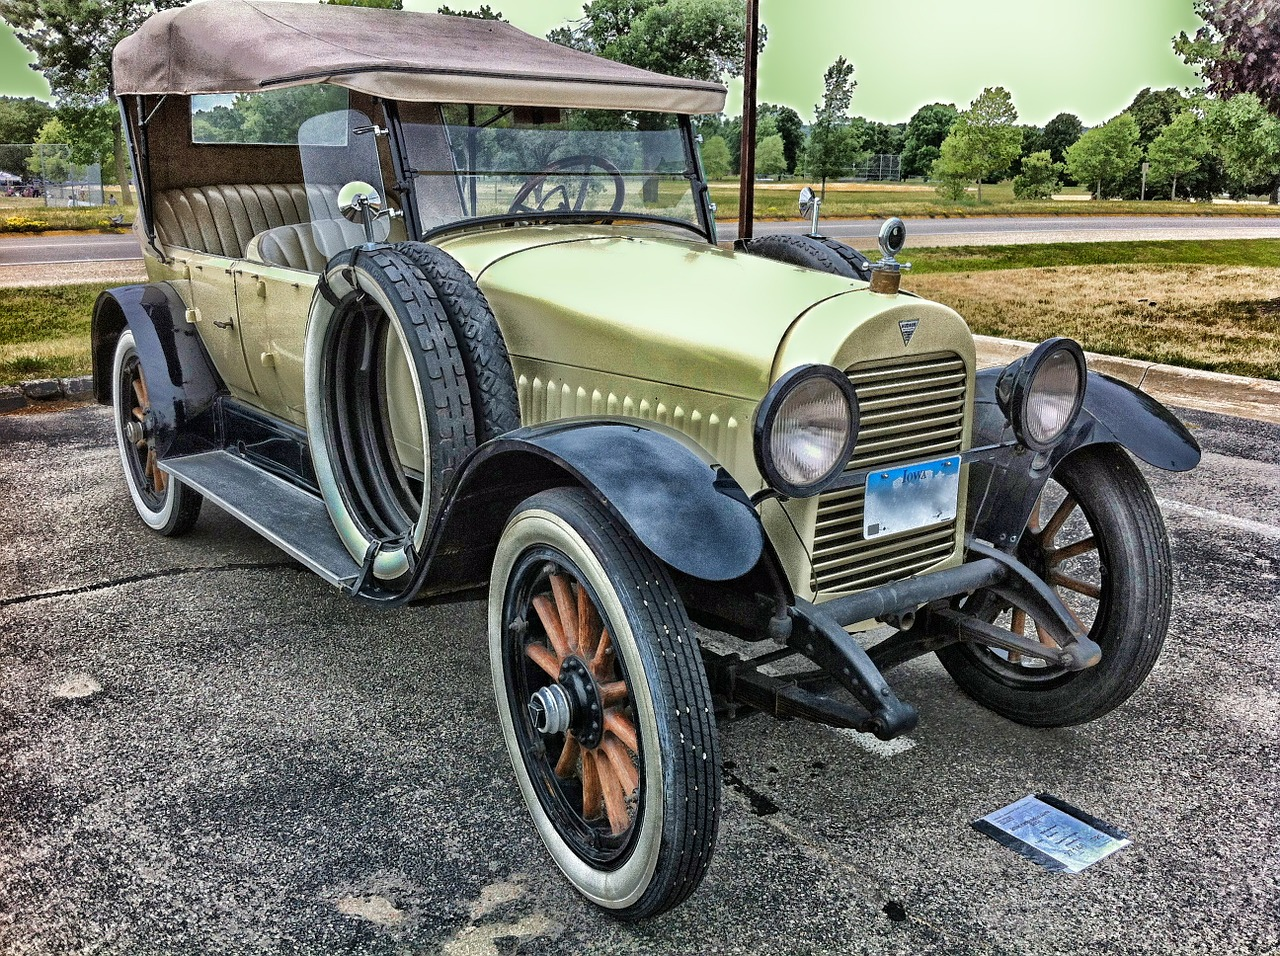 Classic Car Insurance: What to Know about Collector Auto Coverage